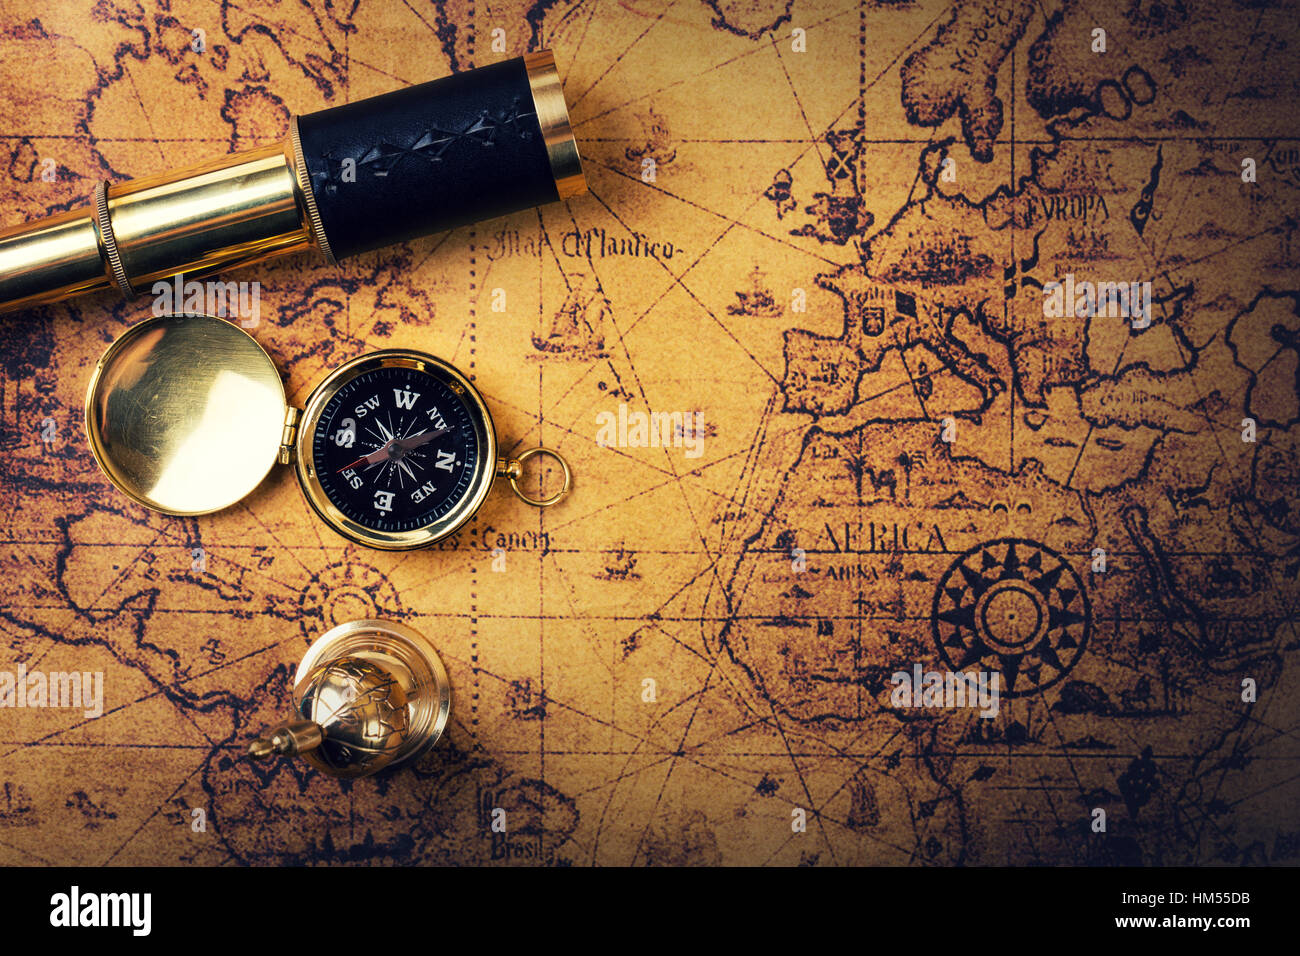 Vintage compass and spyglass on old world map copy space stock vintage compass and spyglass on old world map copy space gumiabroncs Images